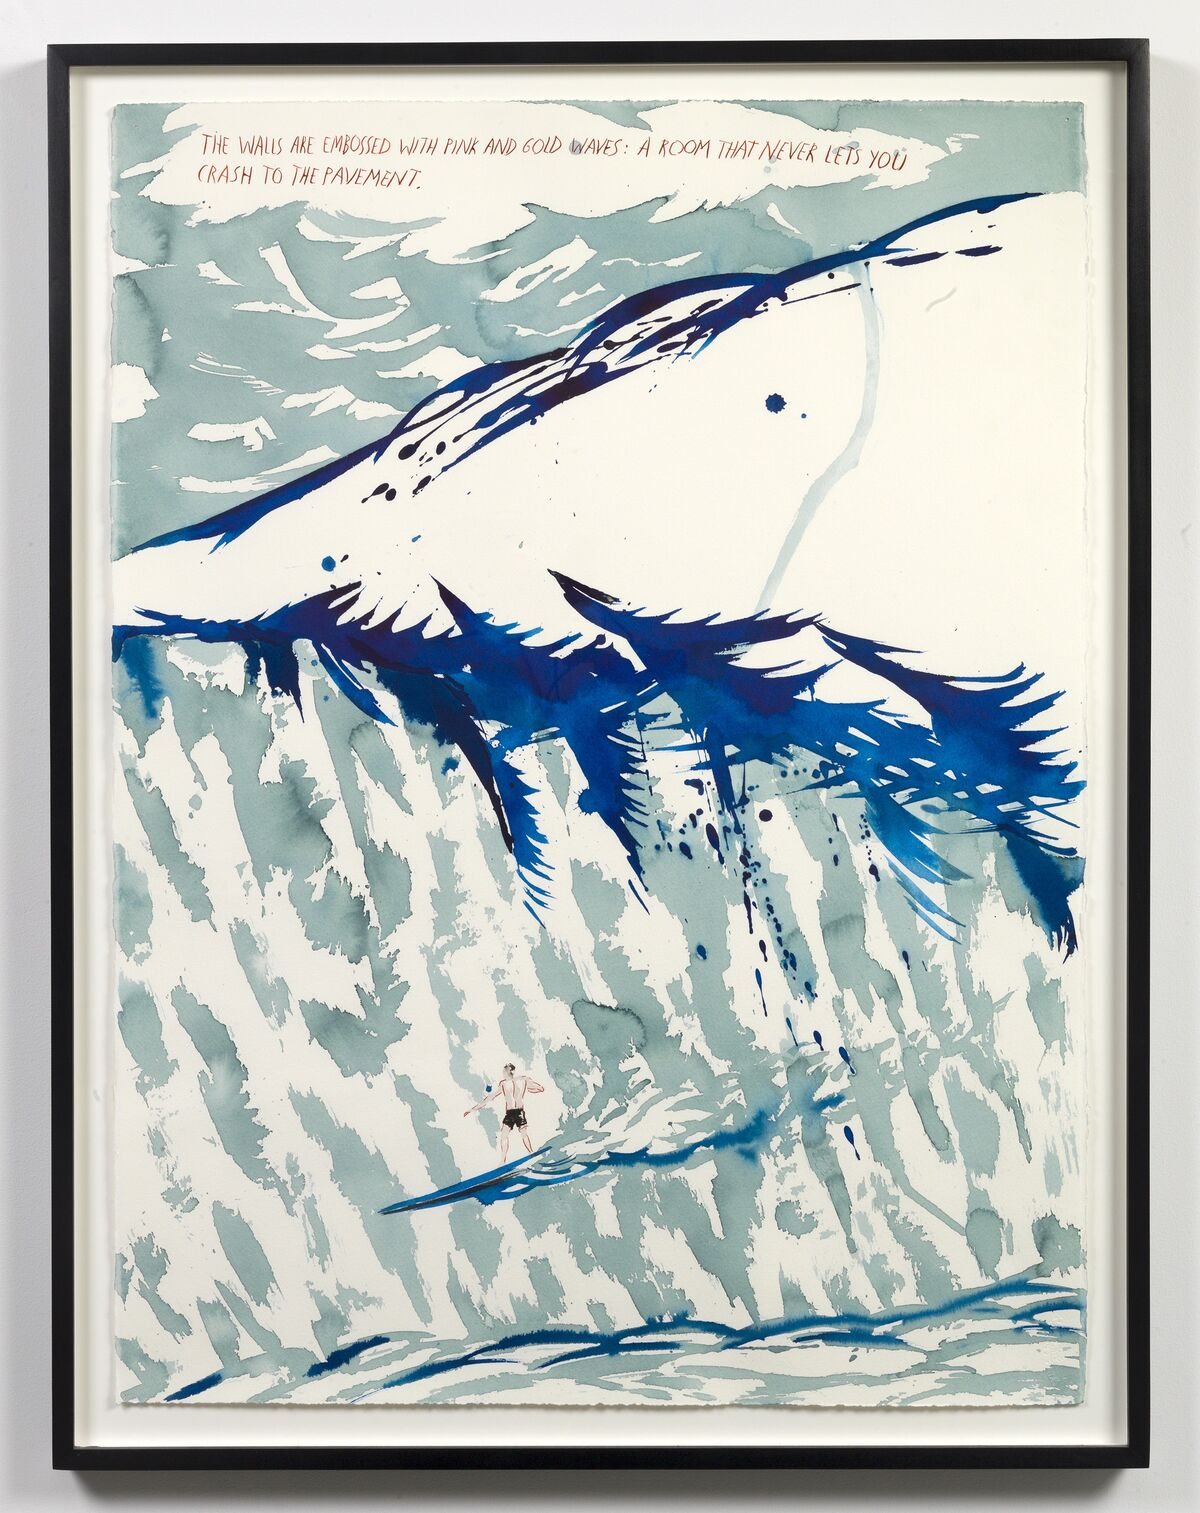 Raymond Pettibon, No title (The walls are...), 1997. Courtesy of David Zwirner, New York.